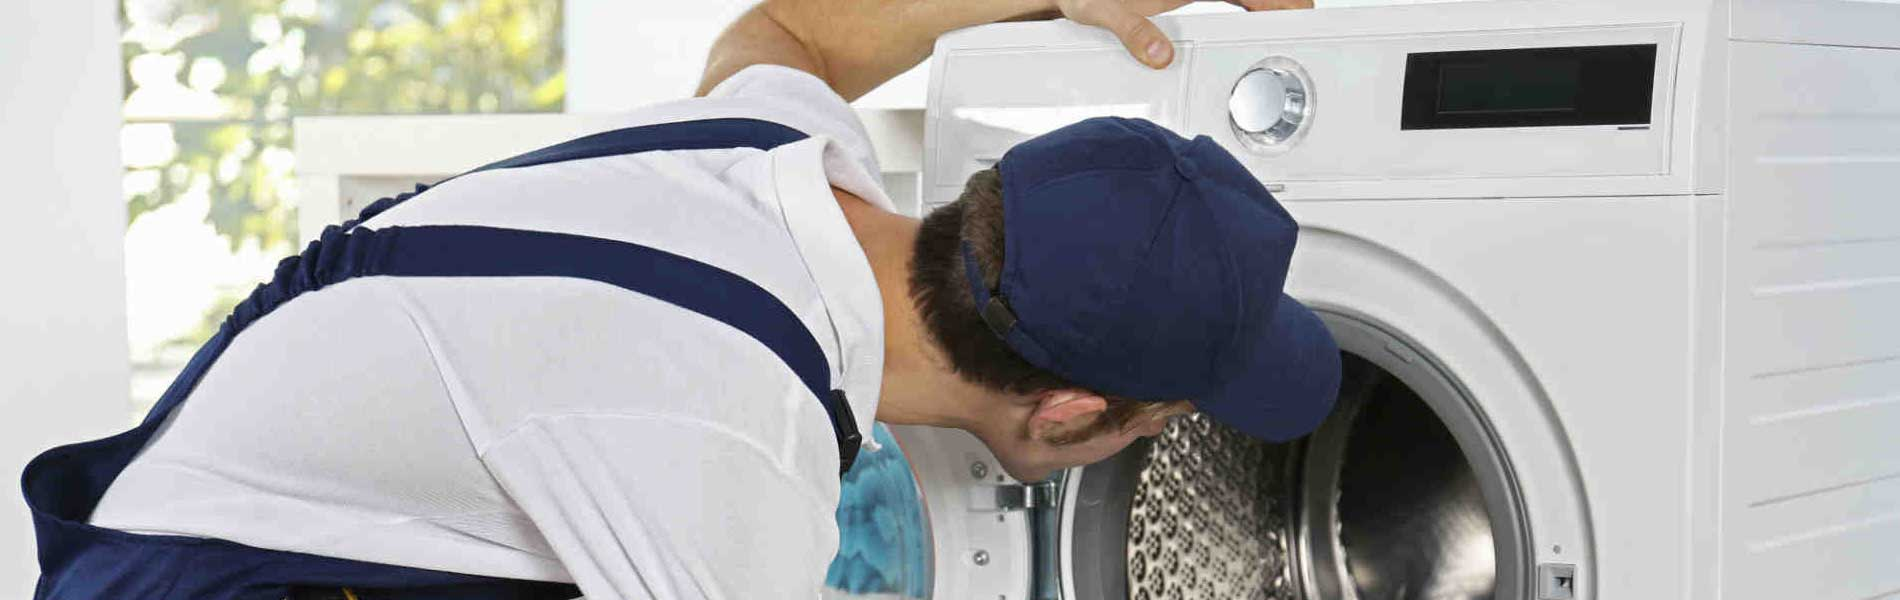 Onida Washing Machine Repair in Sholavaram